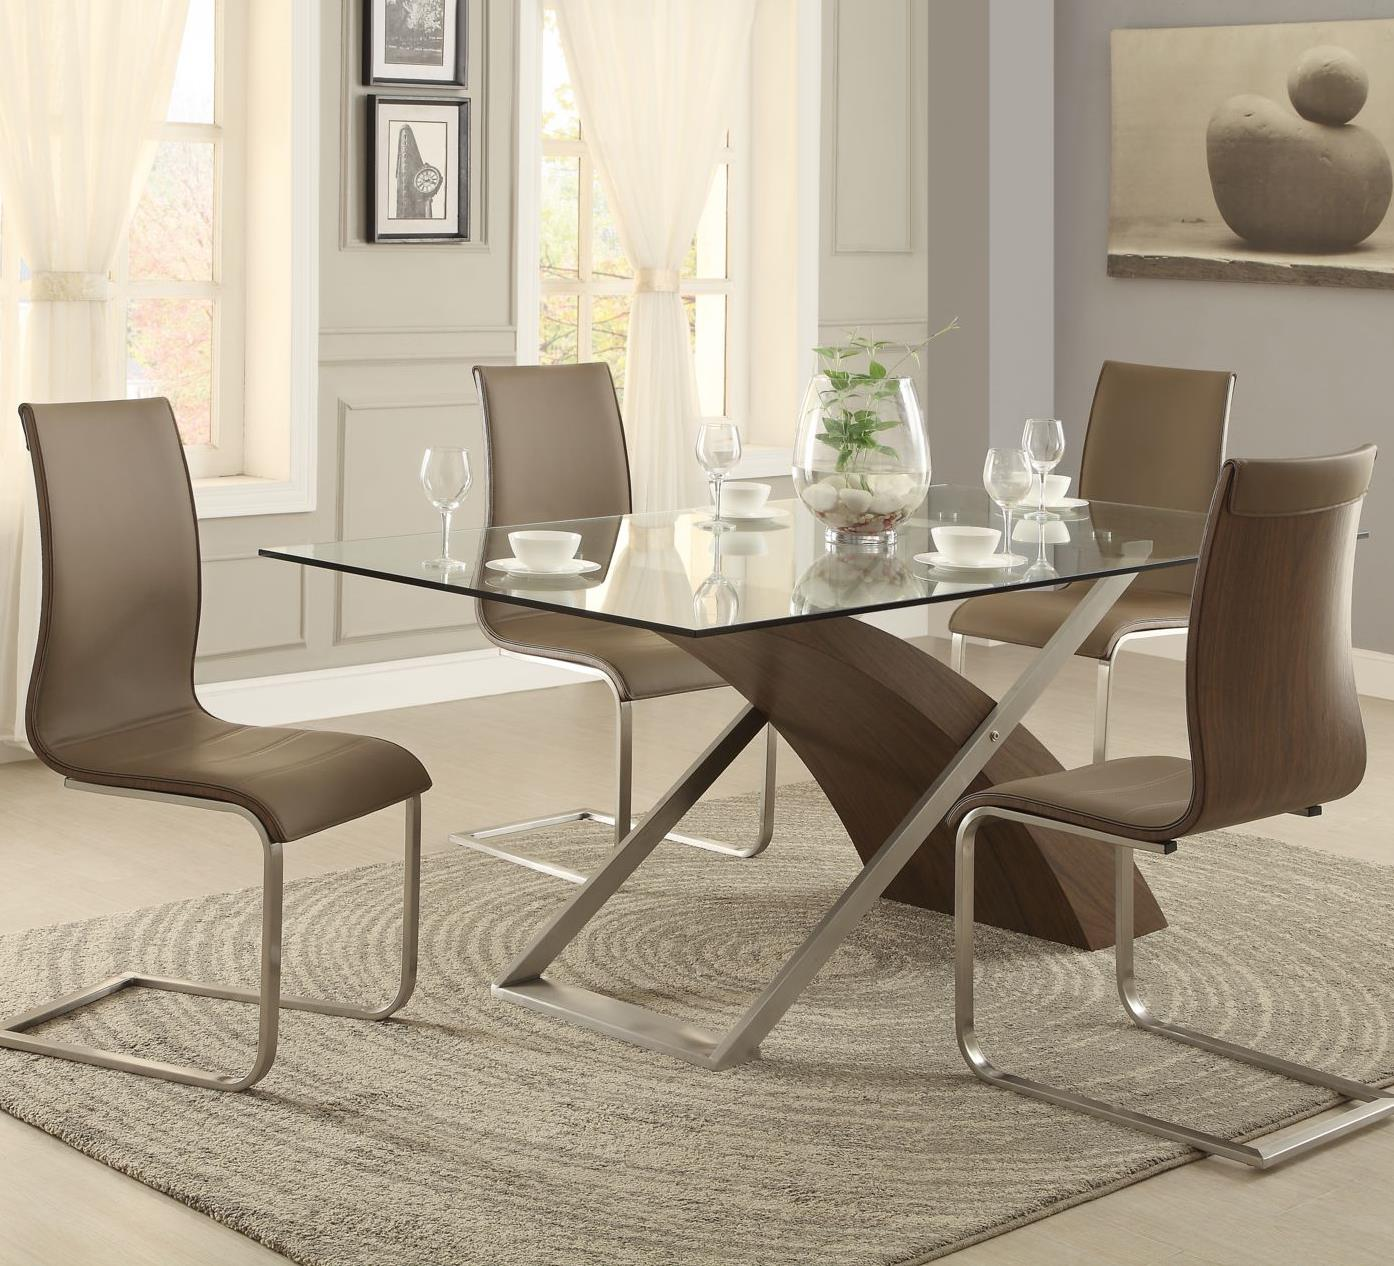 Homelegance Odeon 5 Piece Dining Set - Item Number: 5261G+WB+MB+4x5261S-2P